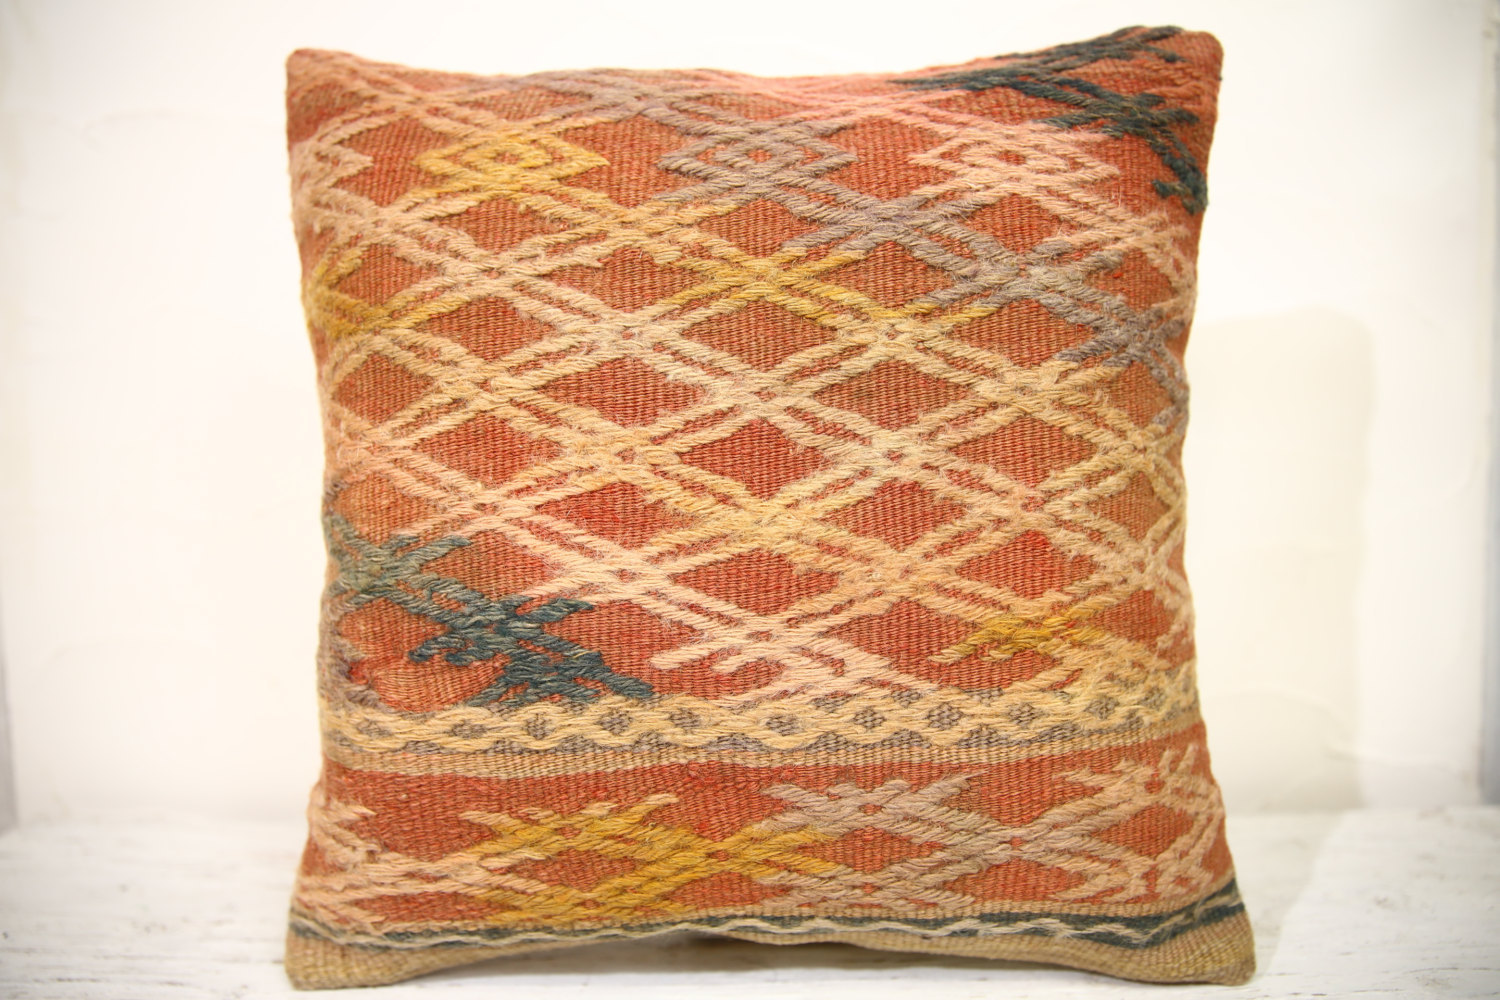 Kilim Pillows | 16x16 | Decorative Pillows | 957 | Accent Pillows , turkish pill